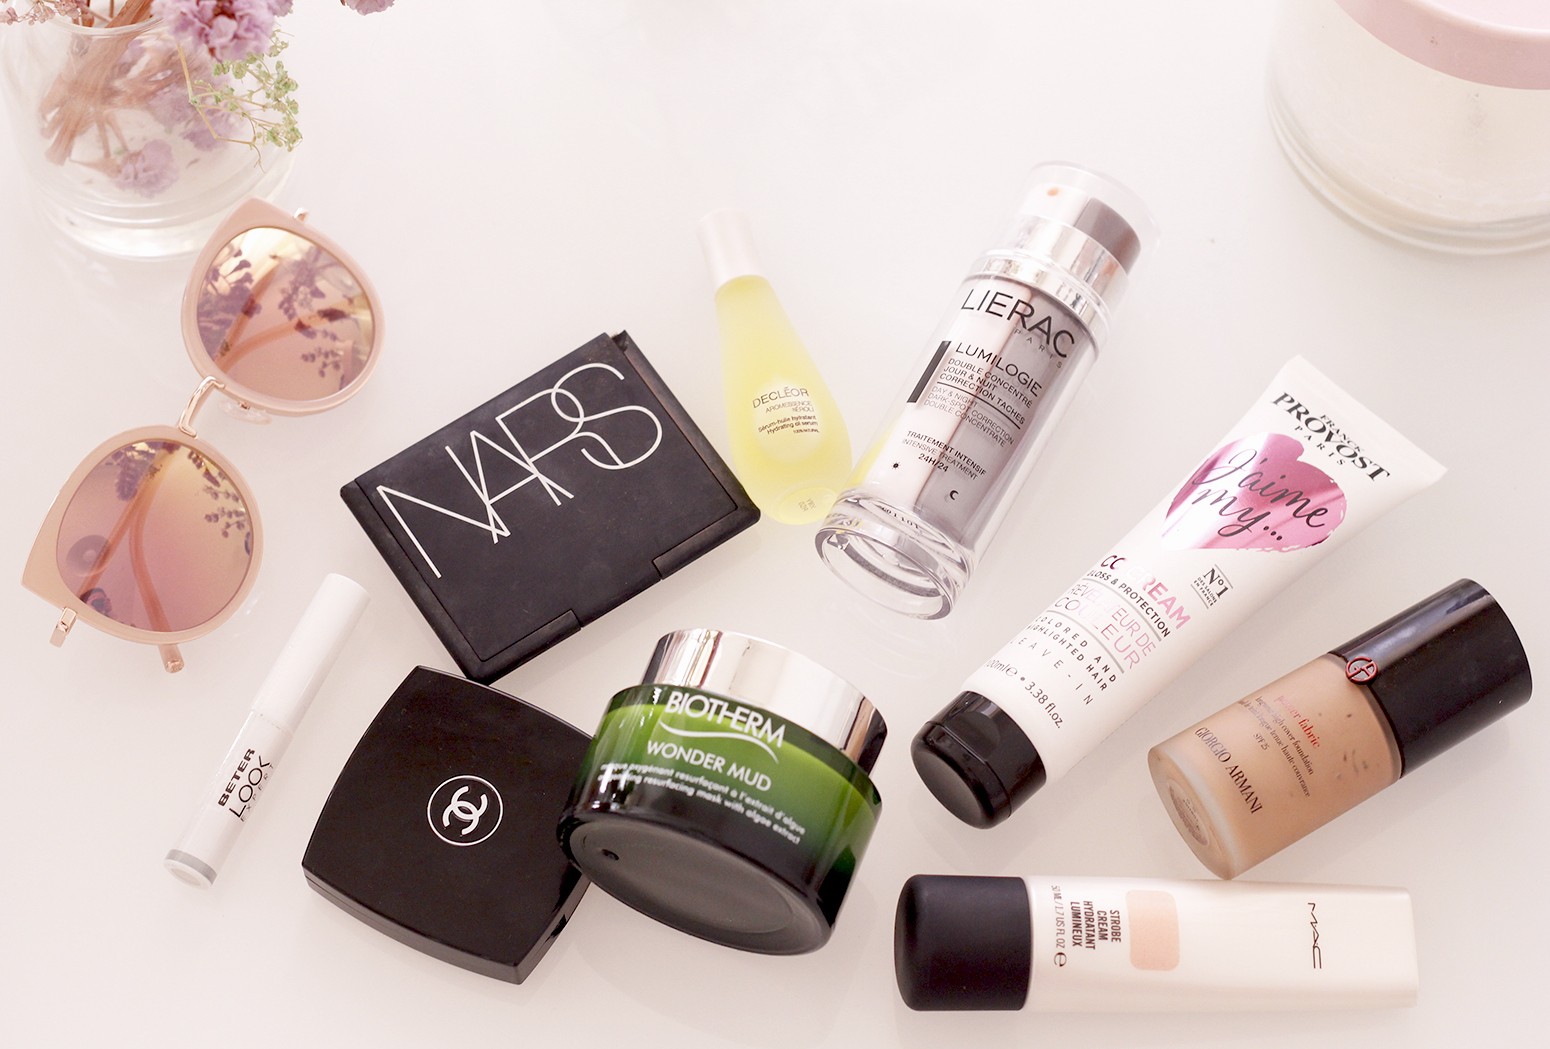 mejores productos de belleza best beauty products nars biotherm chanel NYX Mac5